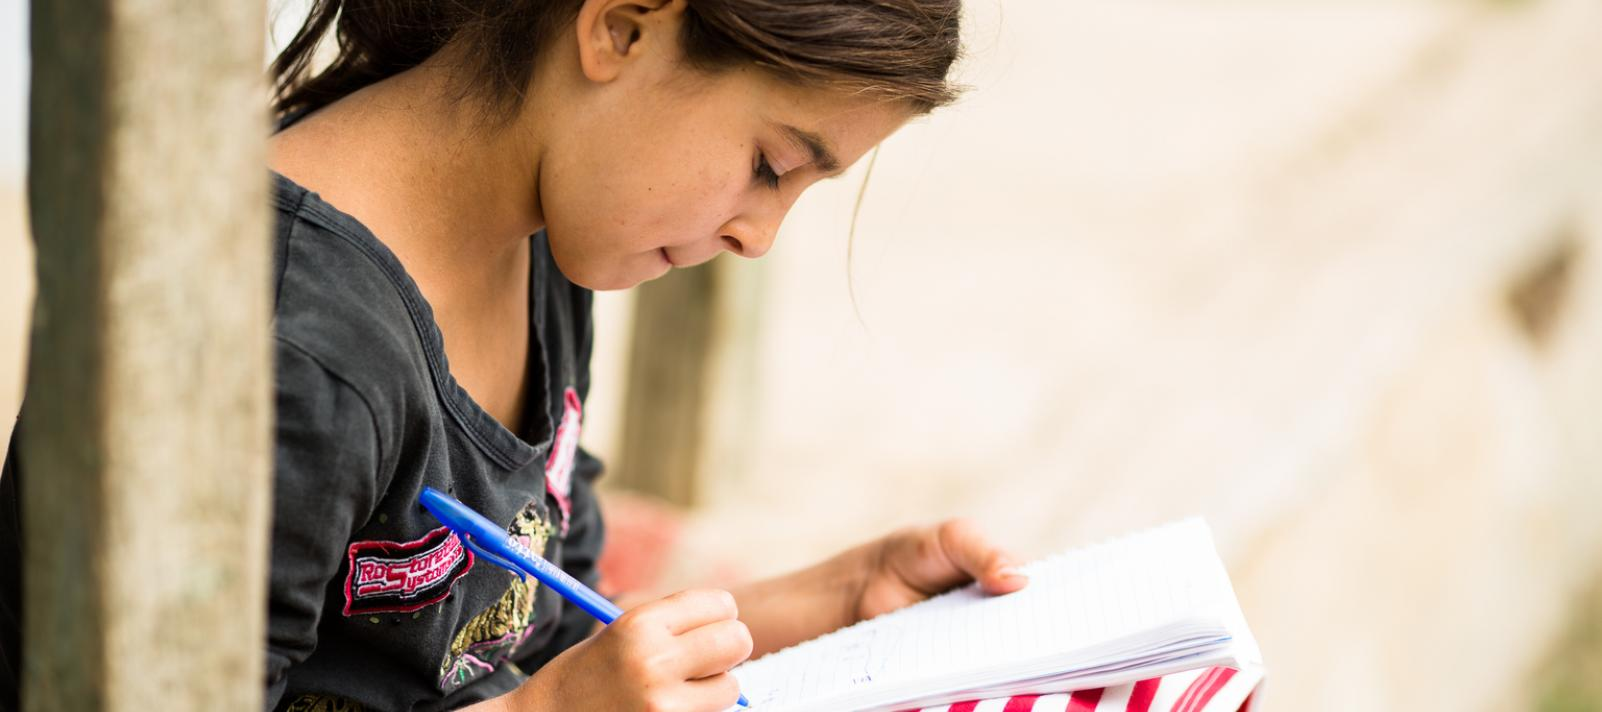 Loredana, 11 years old, sits doing her homework on her porch at her home in Romania.